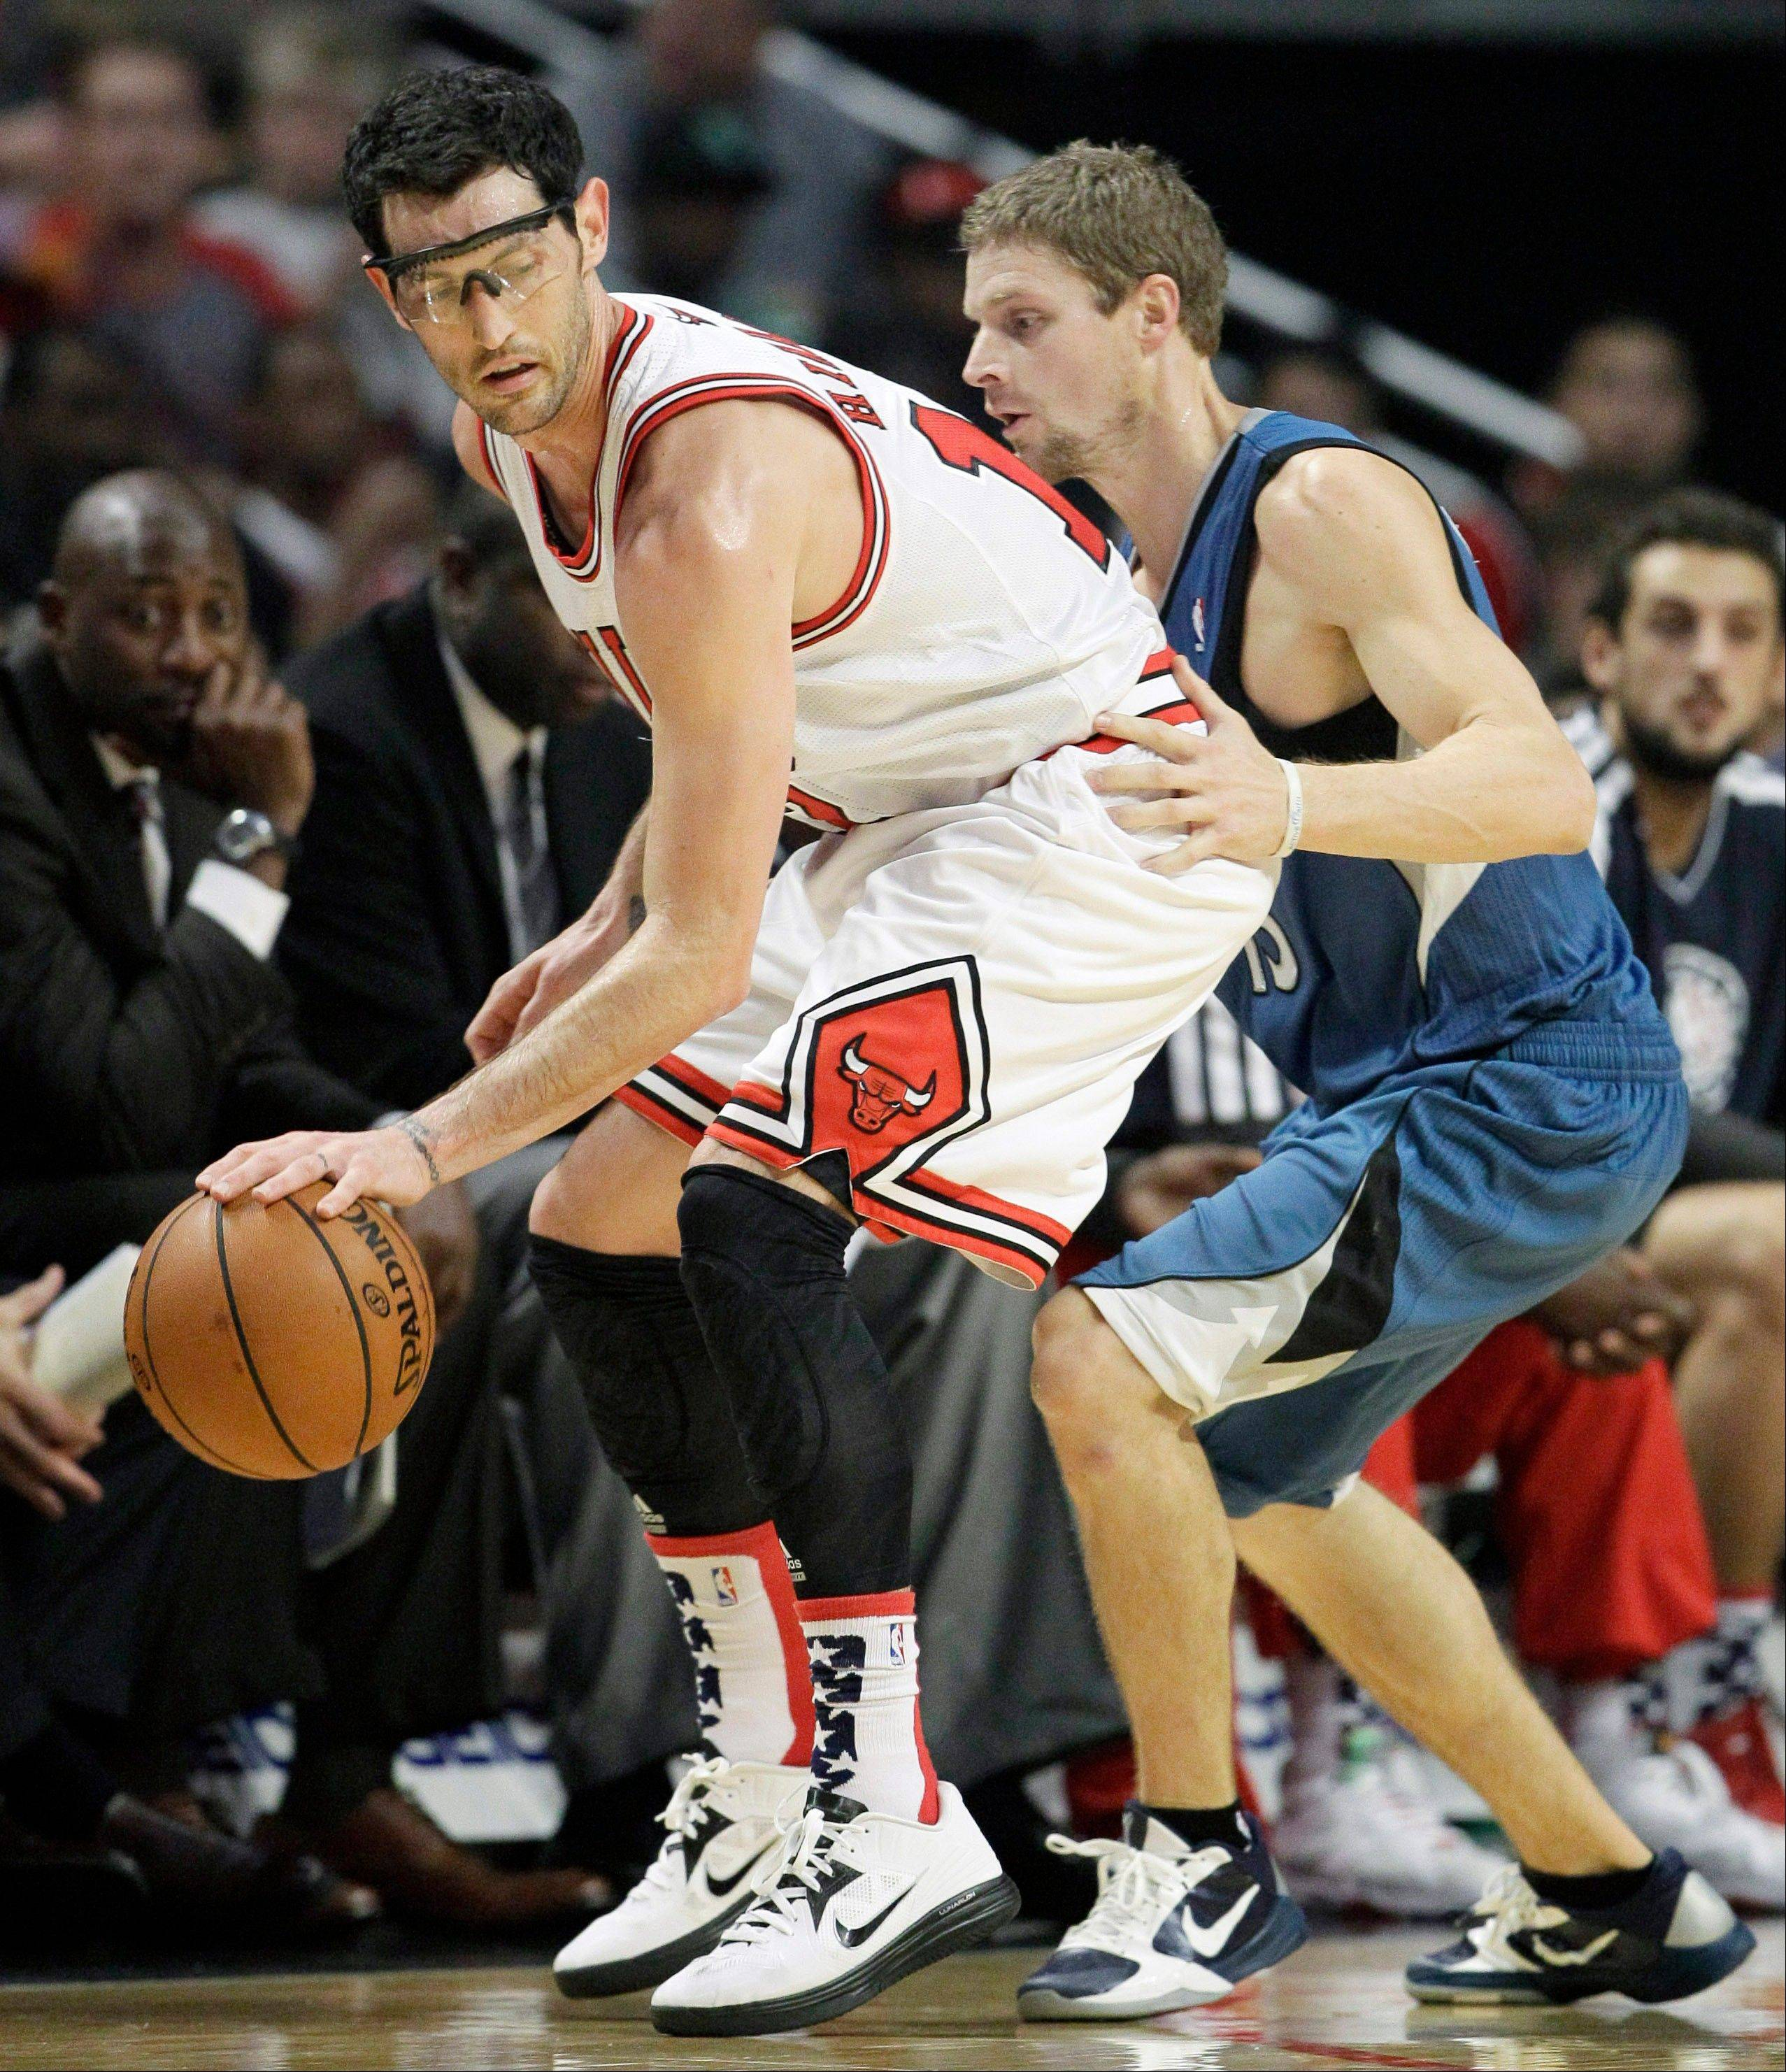 Bulls guard Kirk Hinrich controls the ball as Minnesota Timberwolves guard Luke Ridnour guards Saturday at the United Center. Hinrich sat out Monday night's loss to Boston.